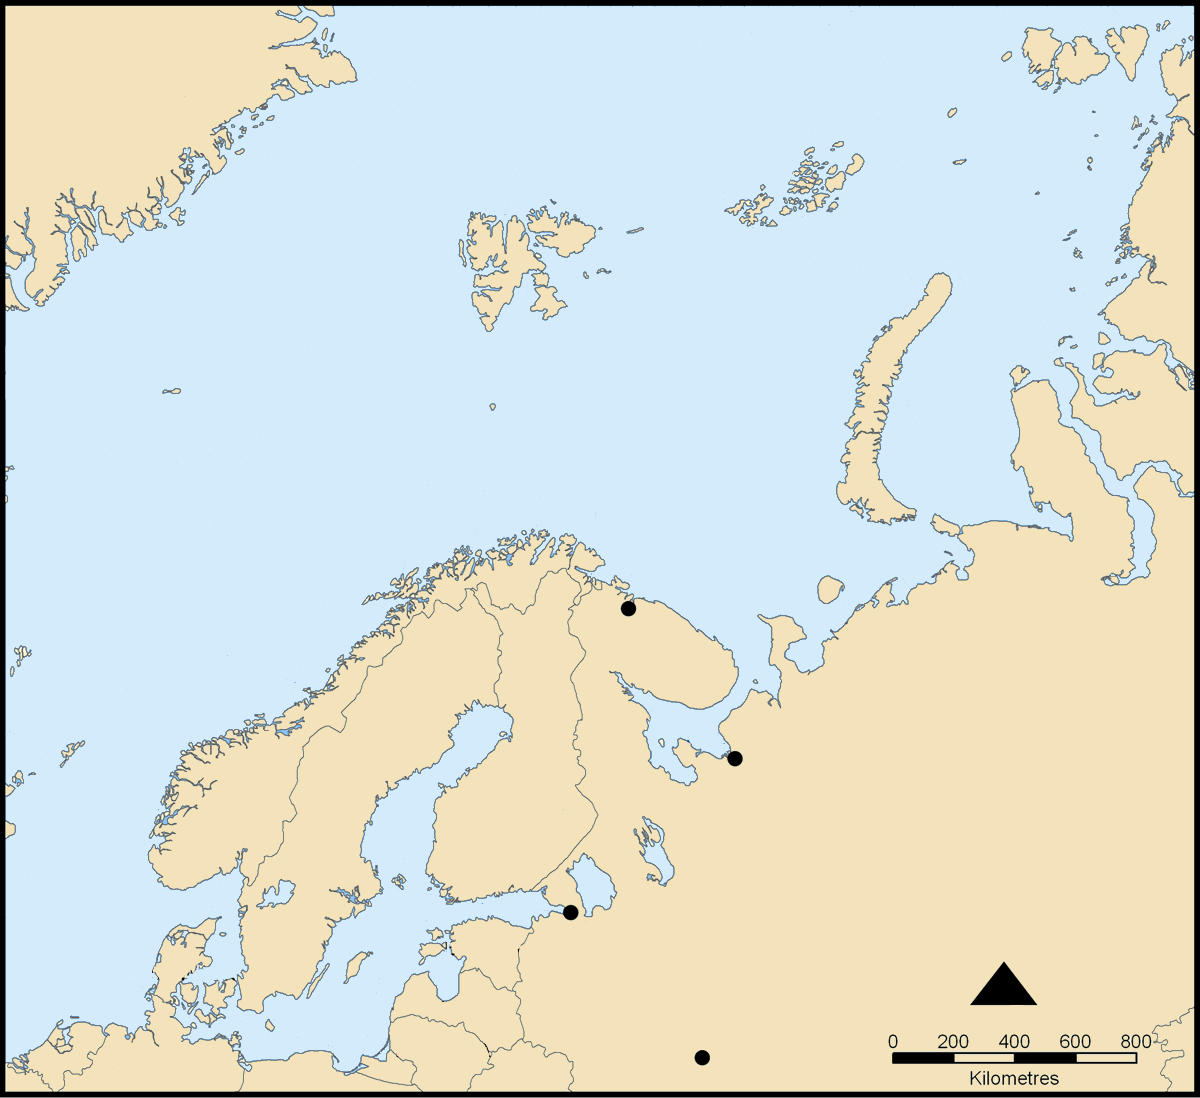 Barents Sea Map File:Barents sea map blank.png   Wikimedia Commons